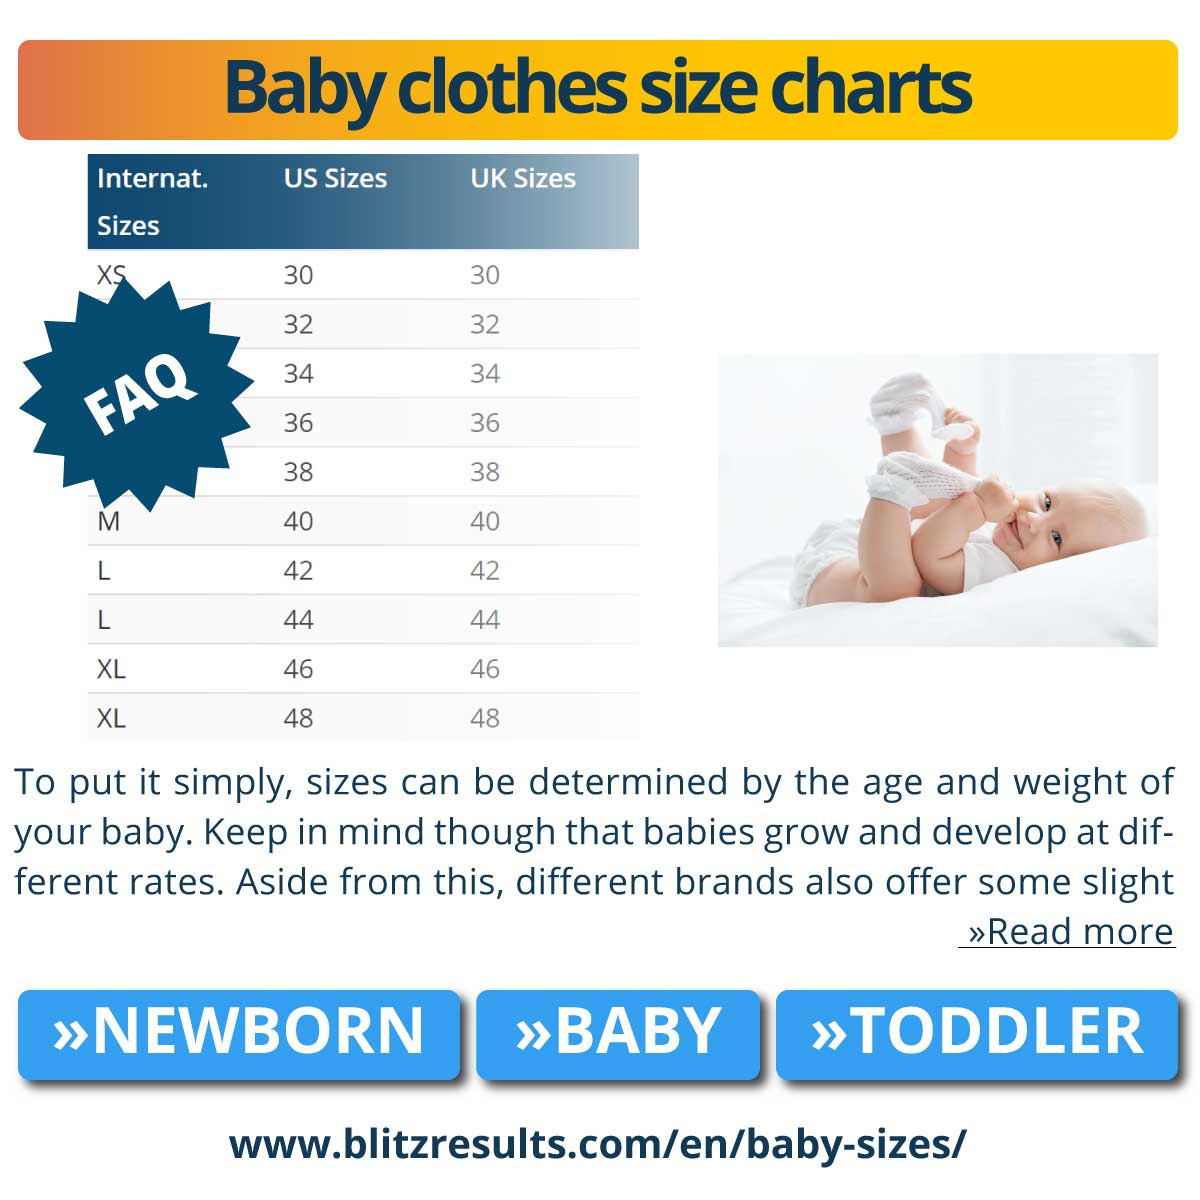 Baby clothes size charts